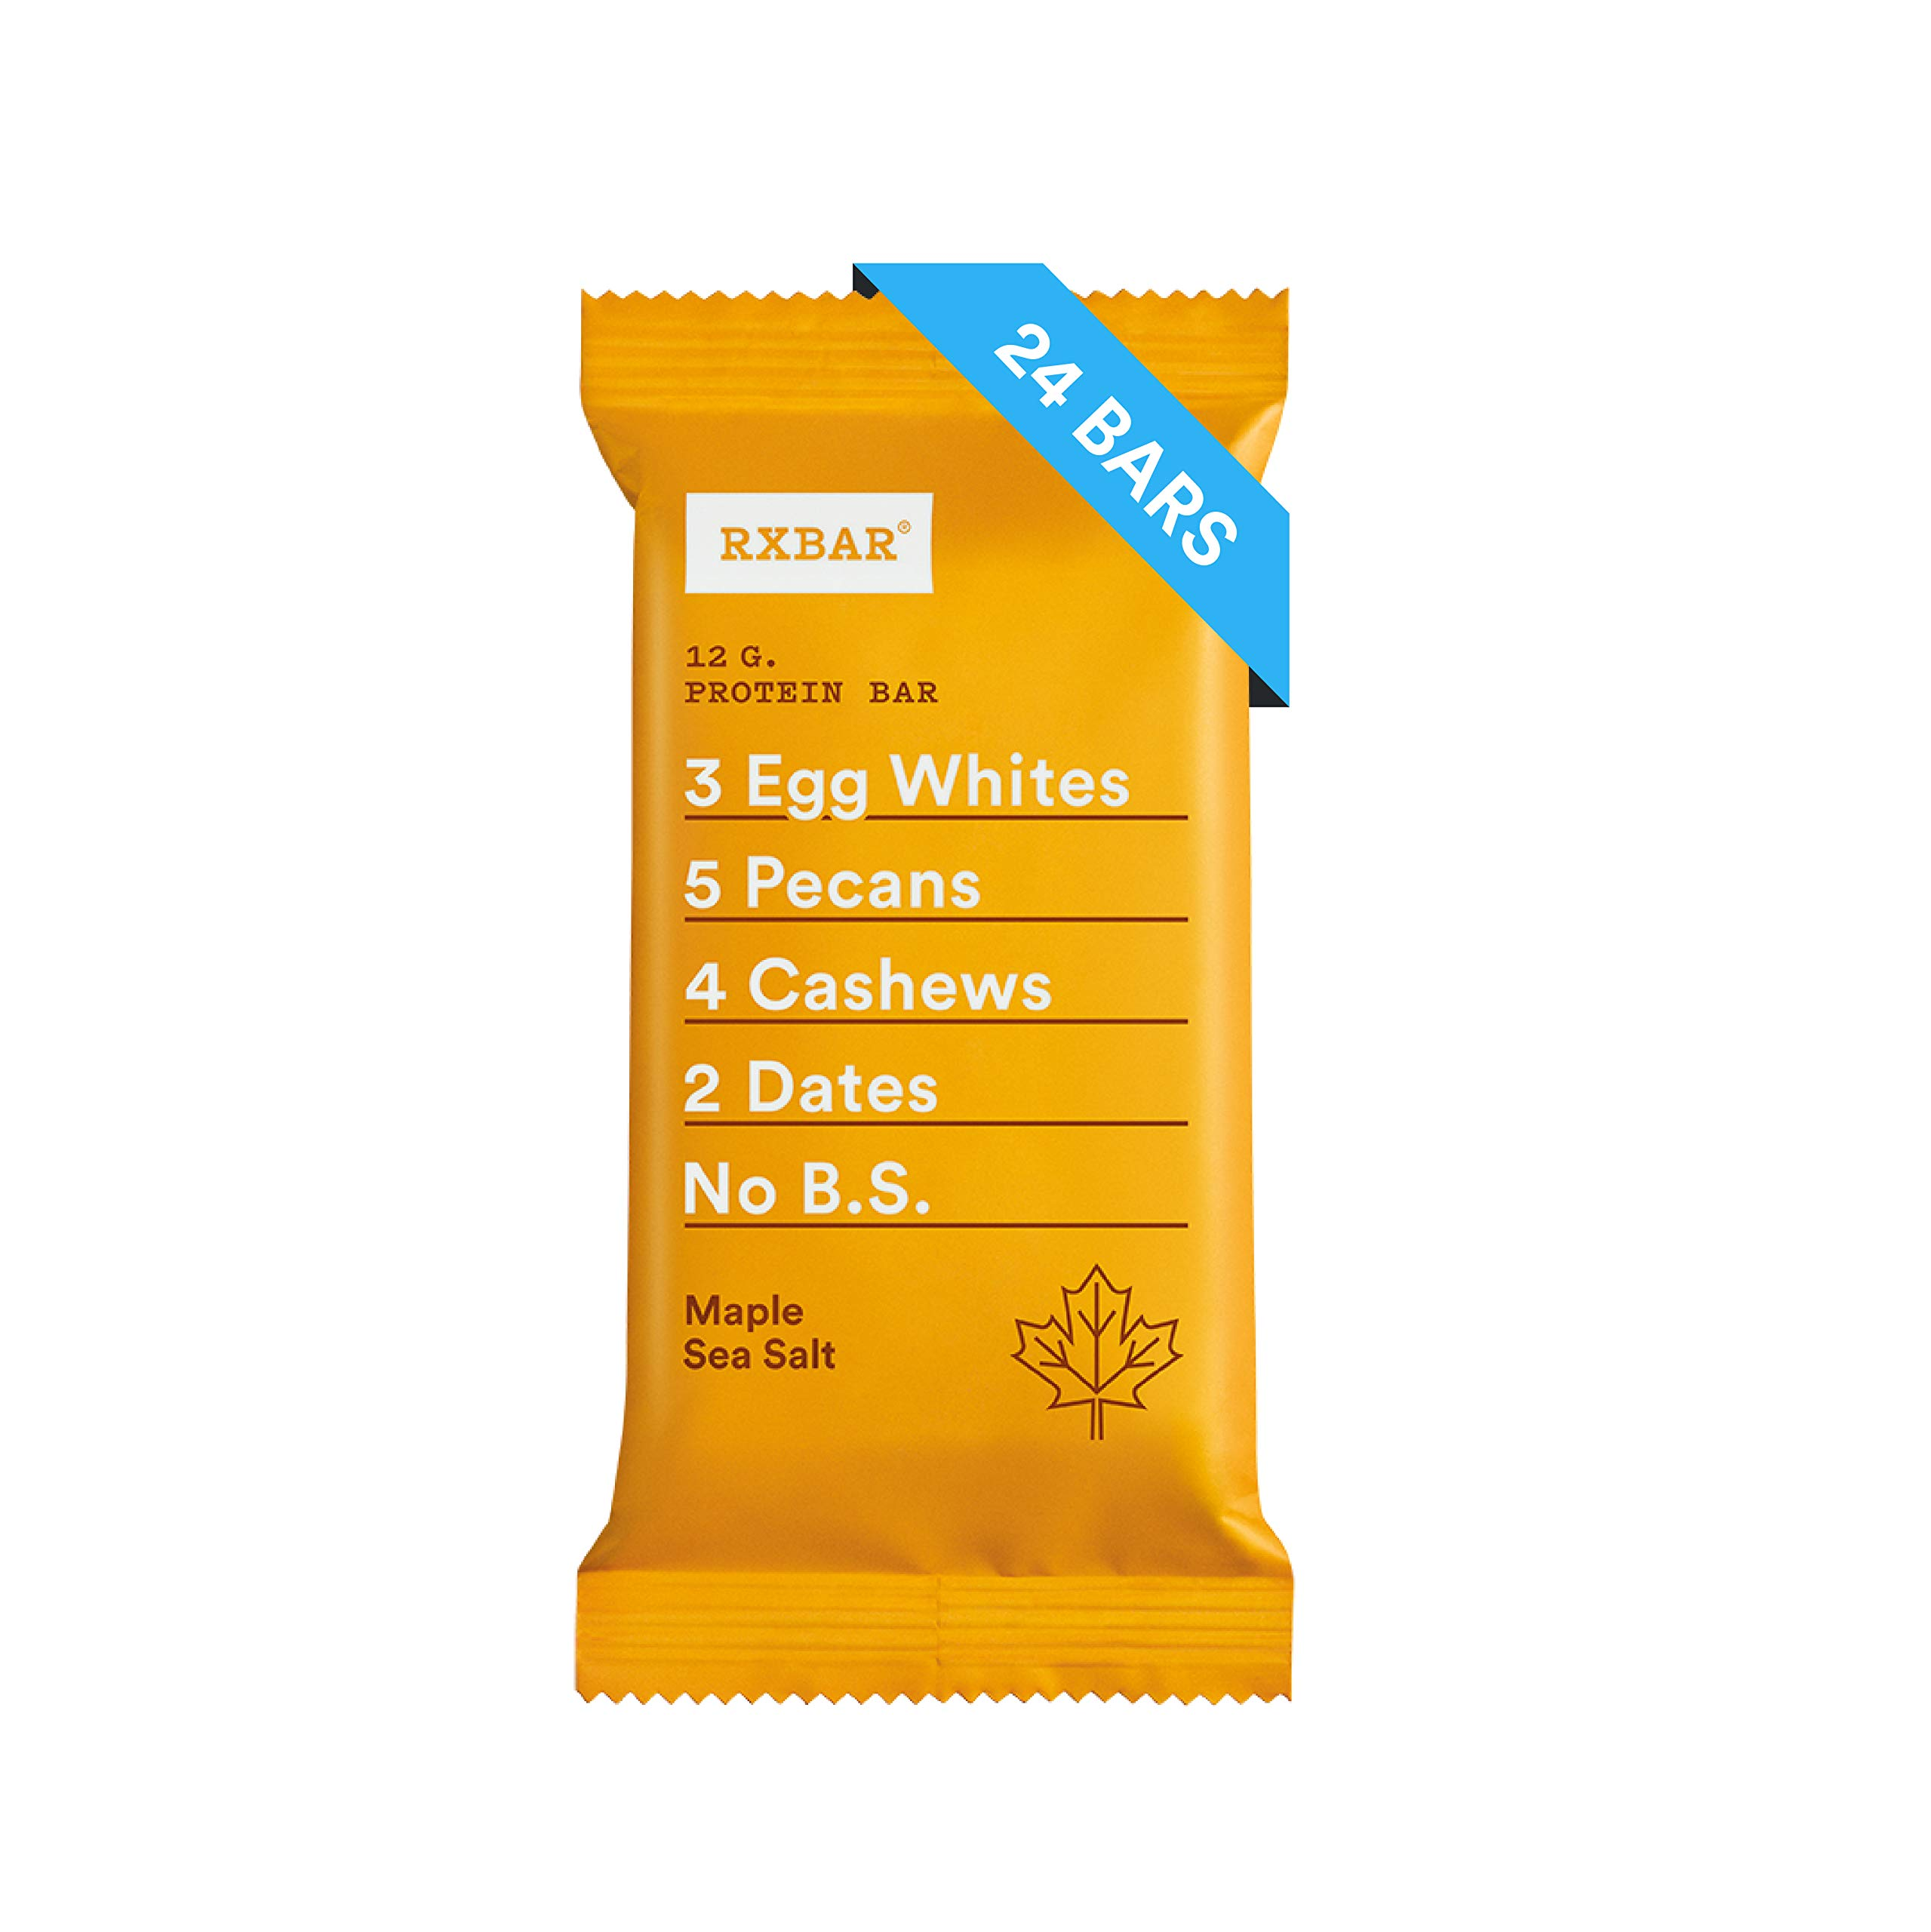 RXBAR Real Food Protein Bar, Maple Sea Salt, Gluten Free, 1.83oz Bars, 24 Count by RXBAR (Image #1)